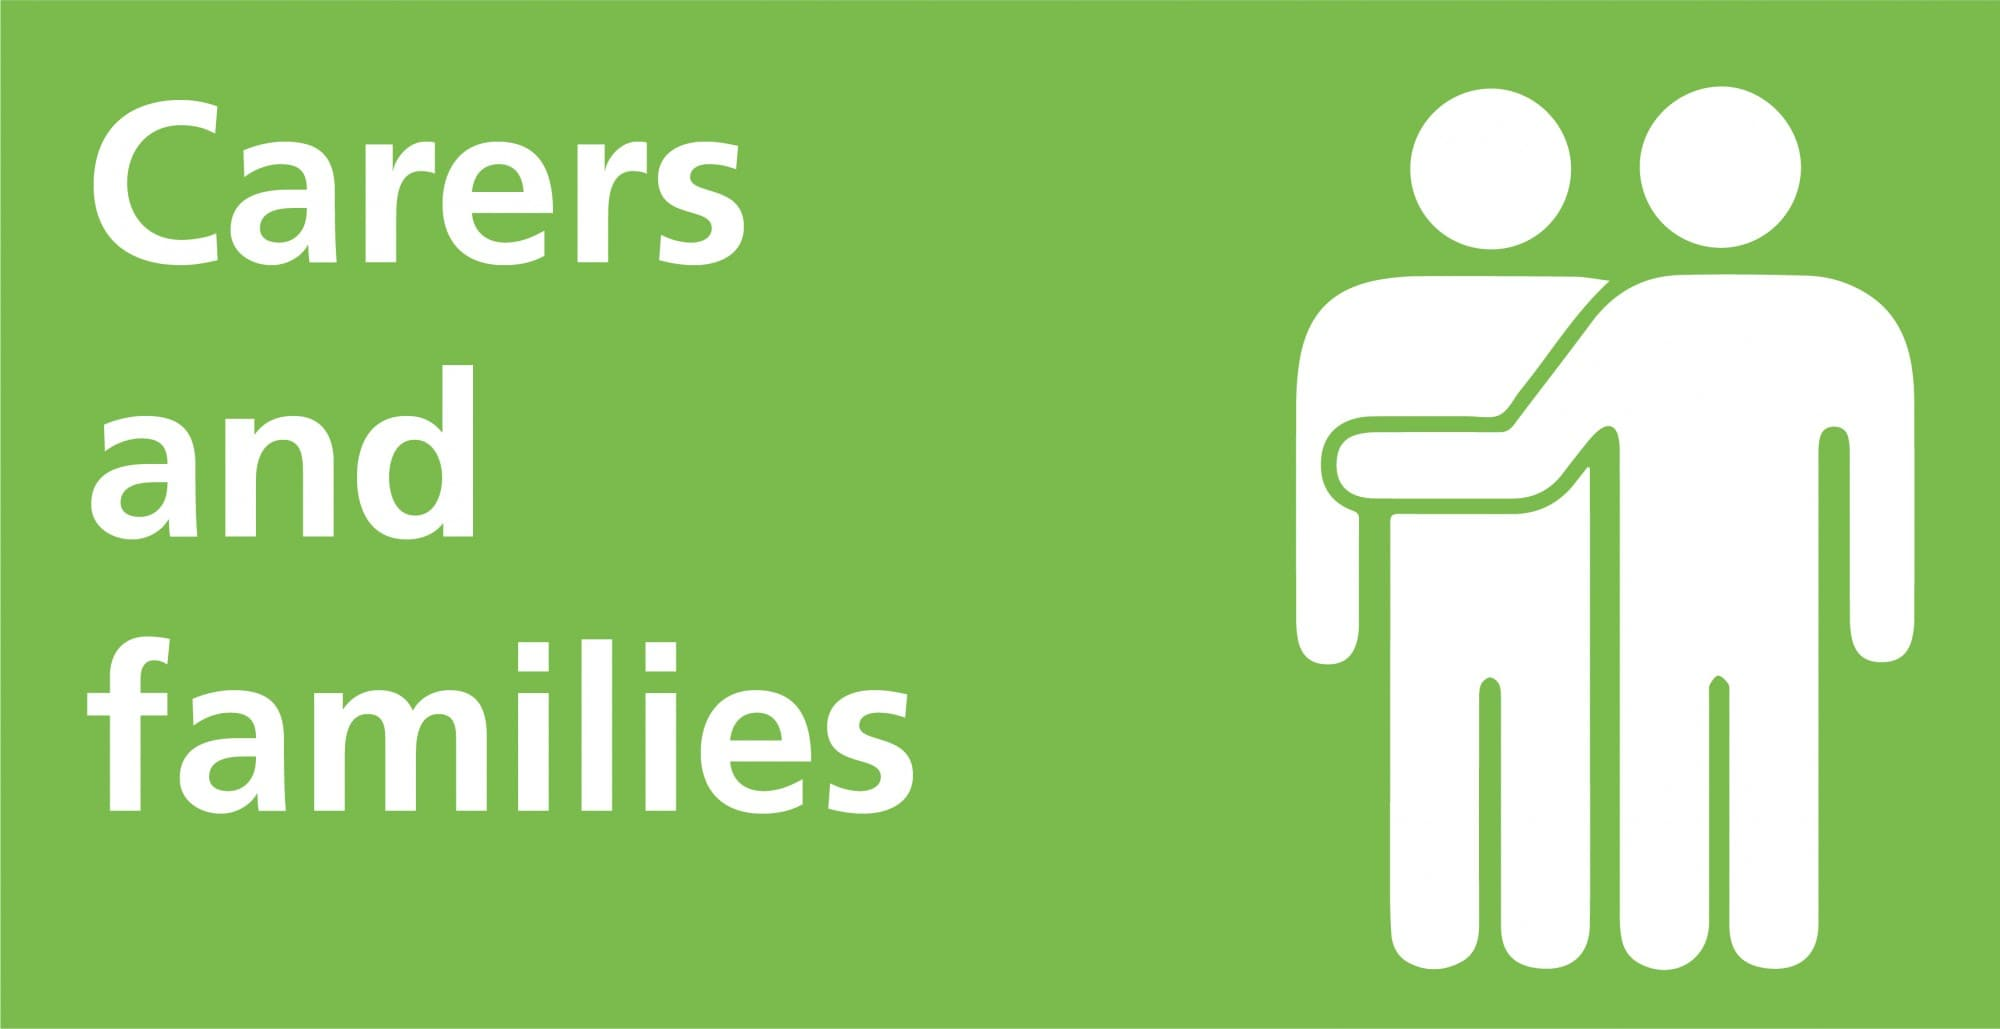 Carers and families